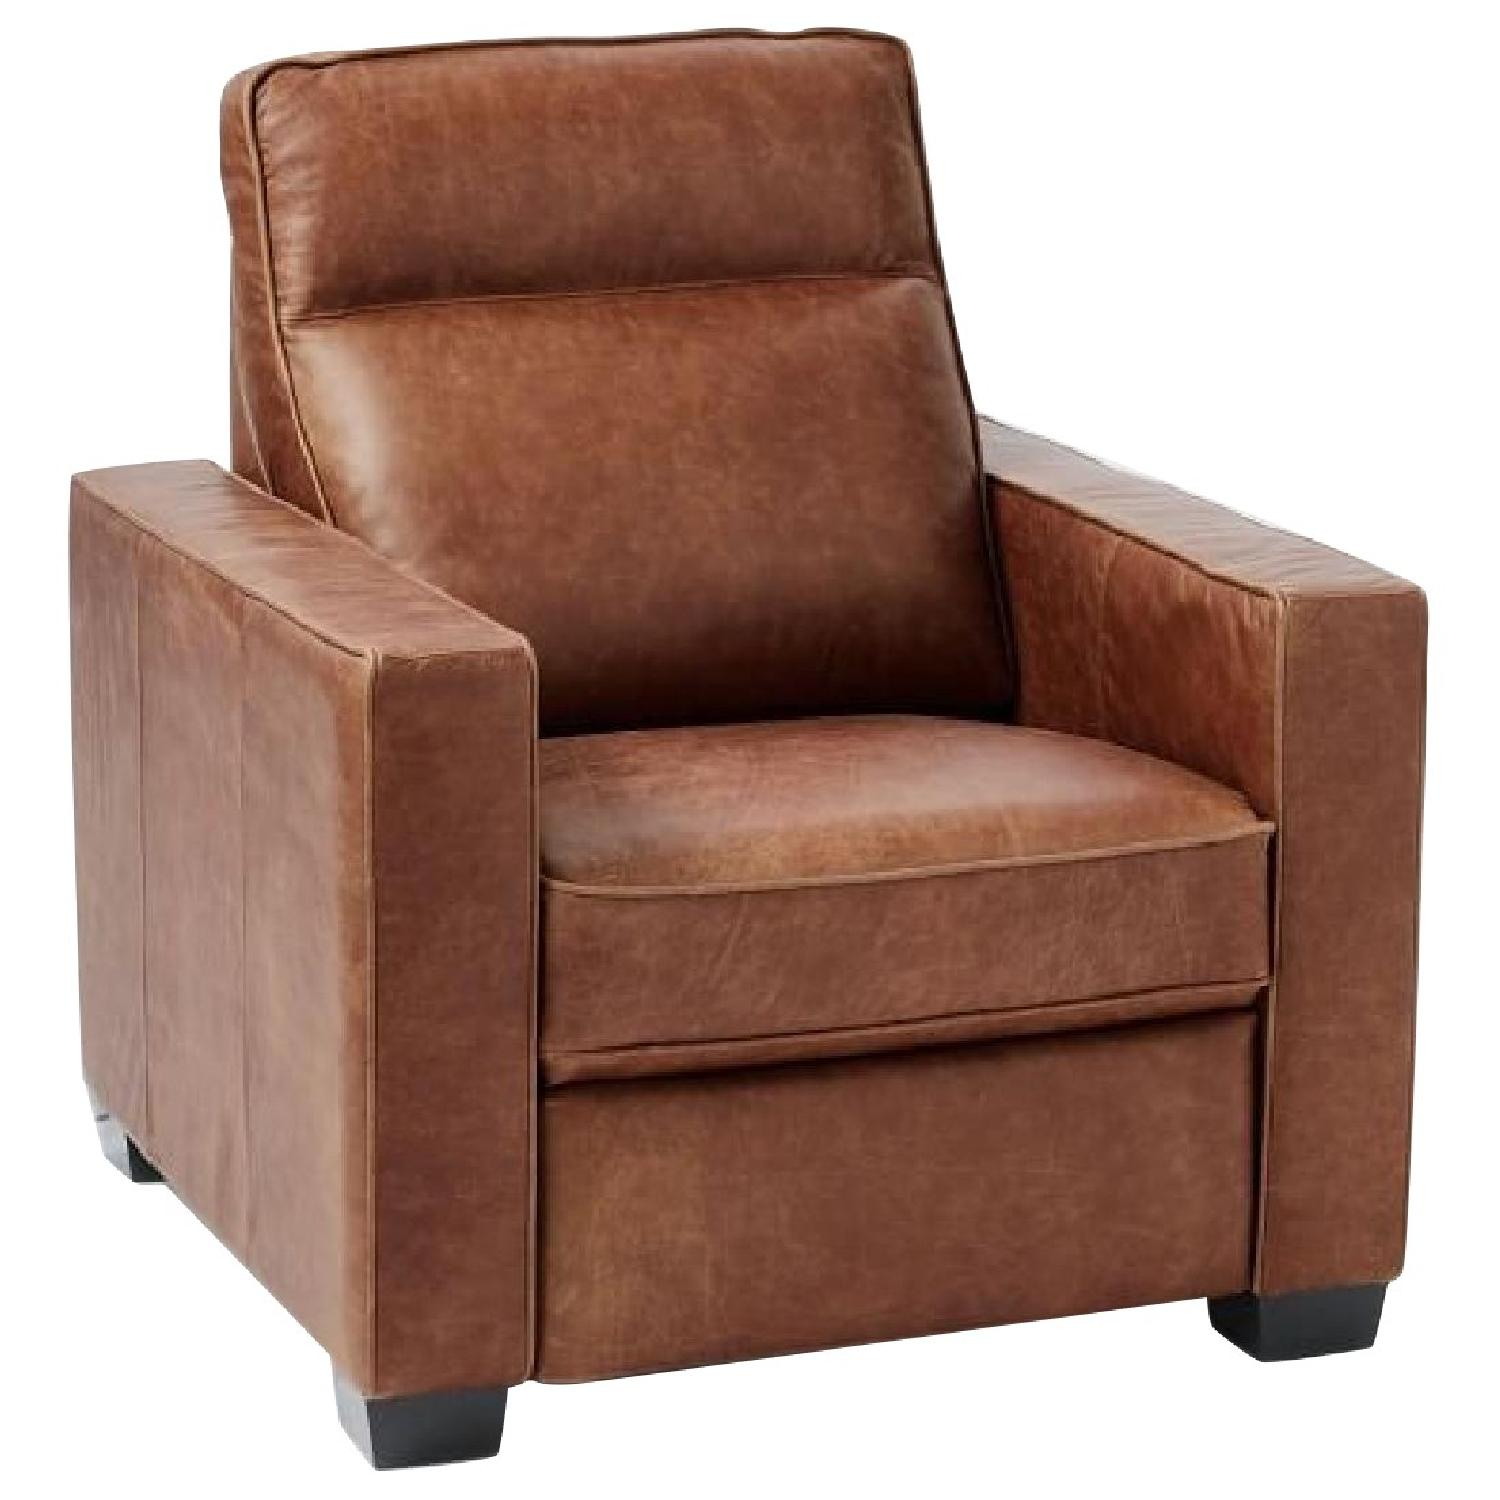 West Elm Henry Leather Power Recliner